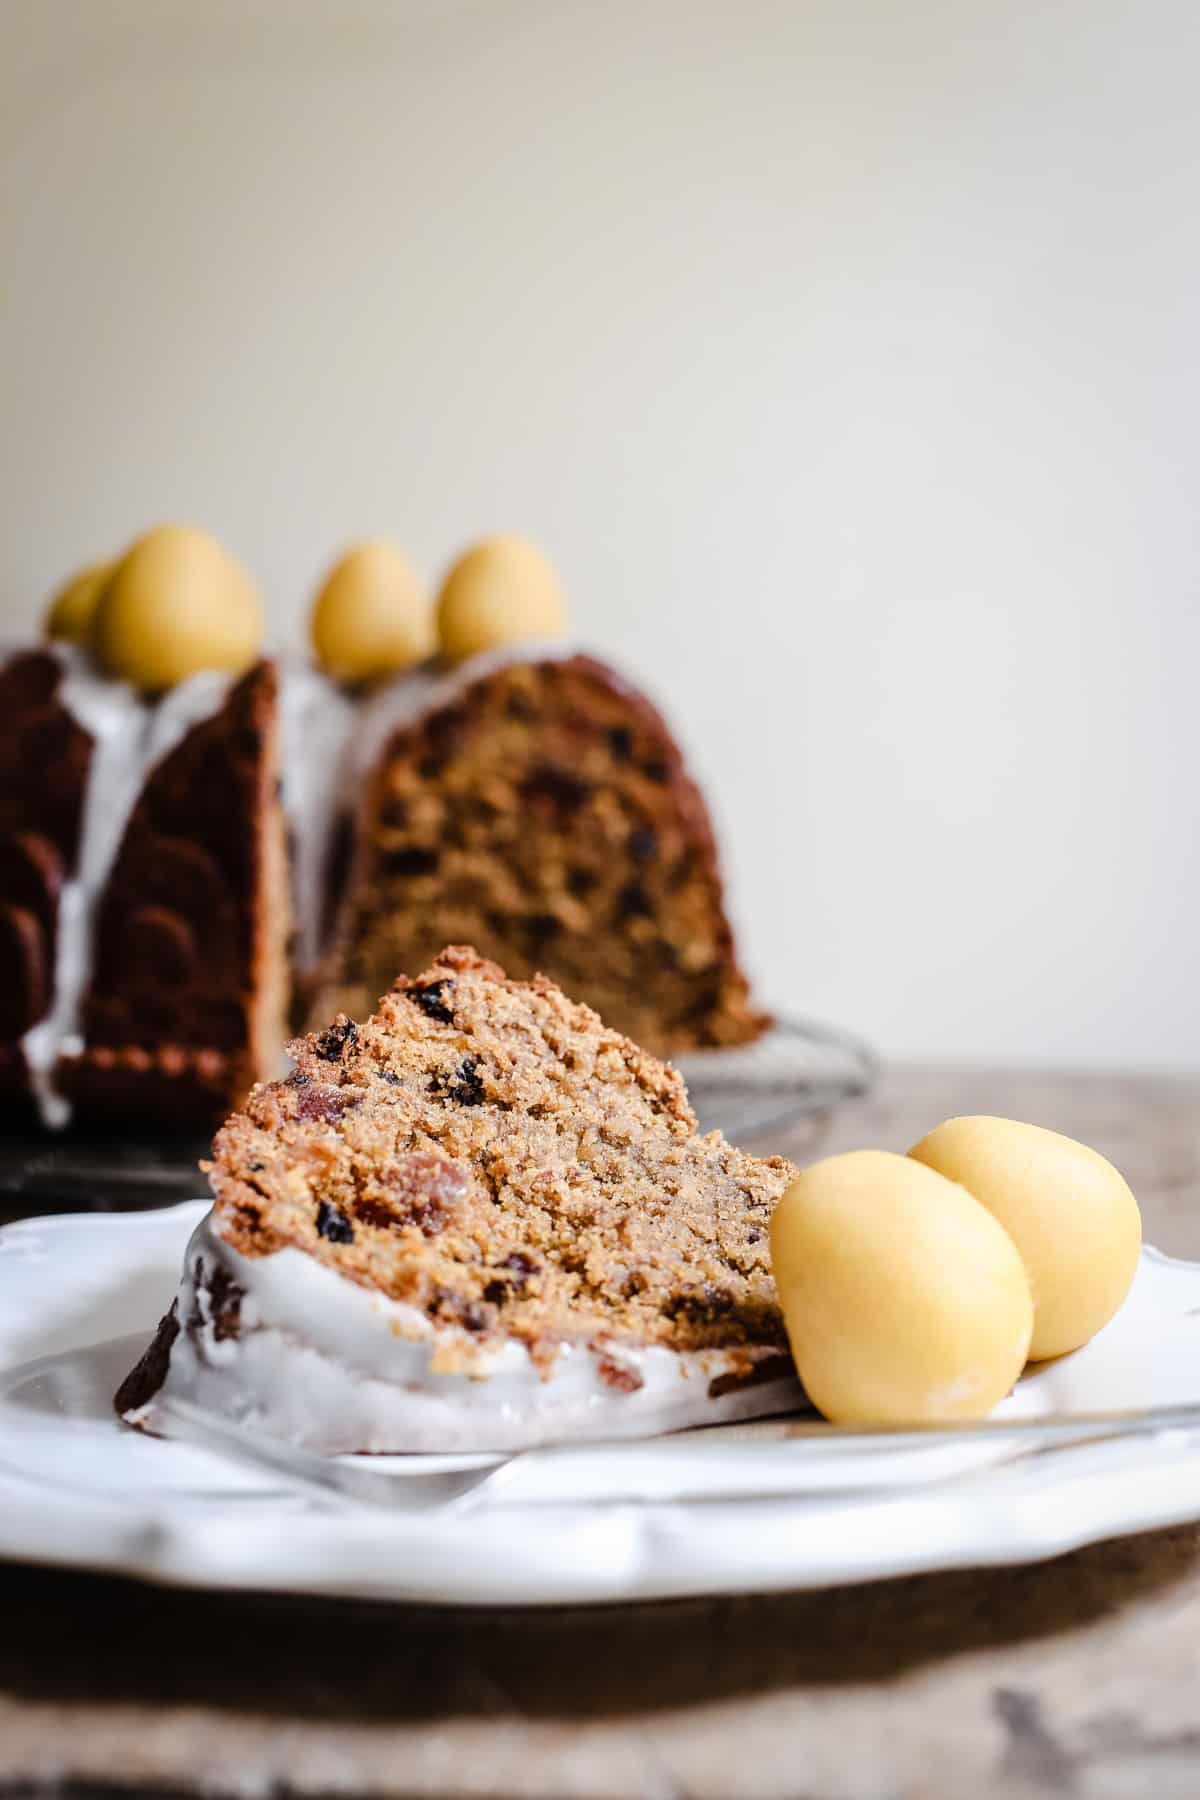 A slice of Simnel Cake on a plate